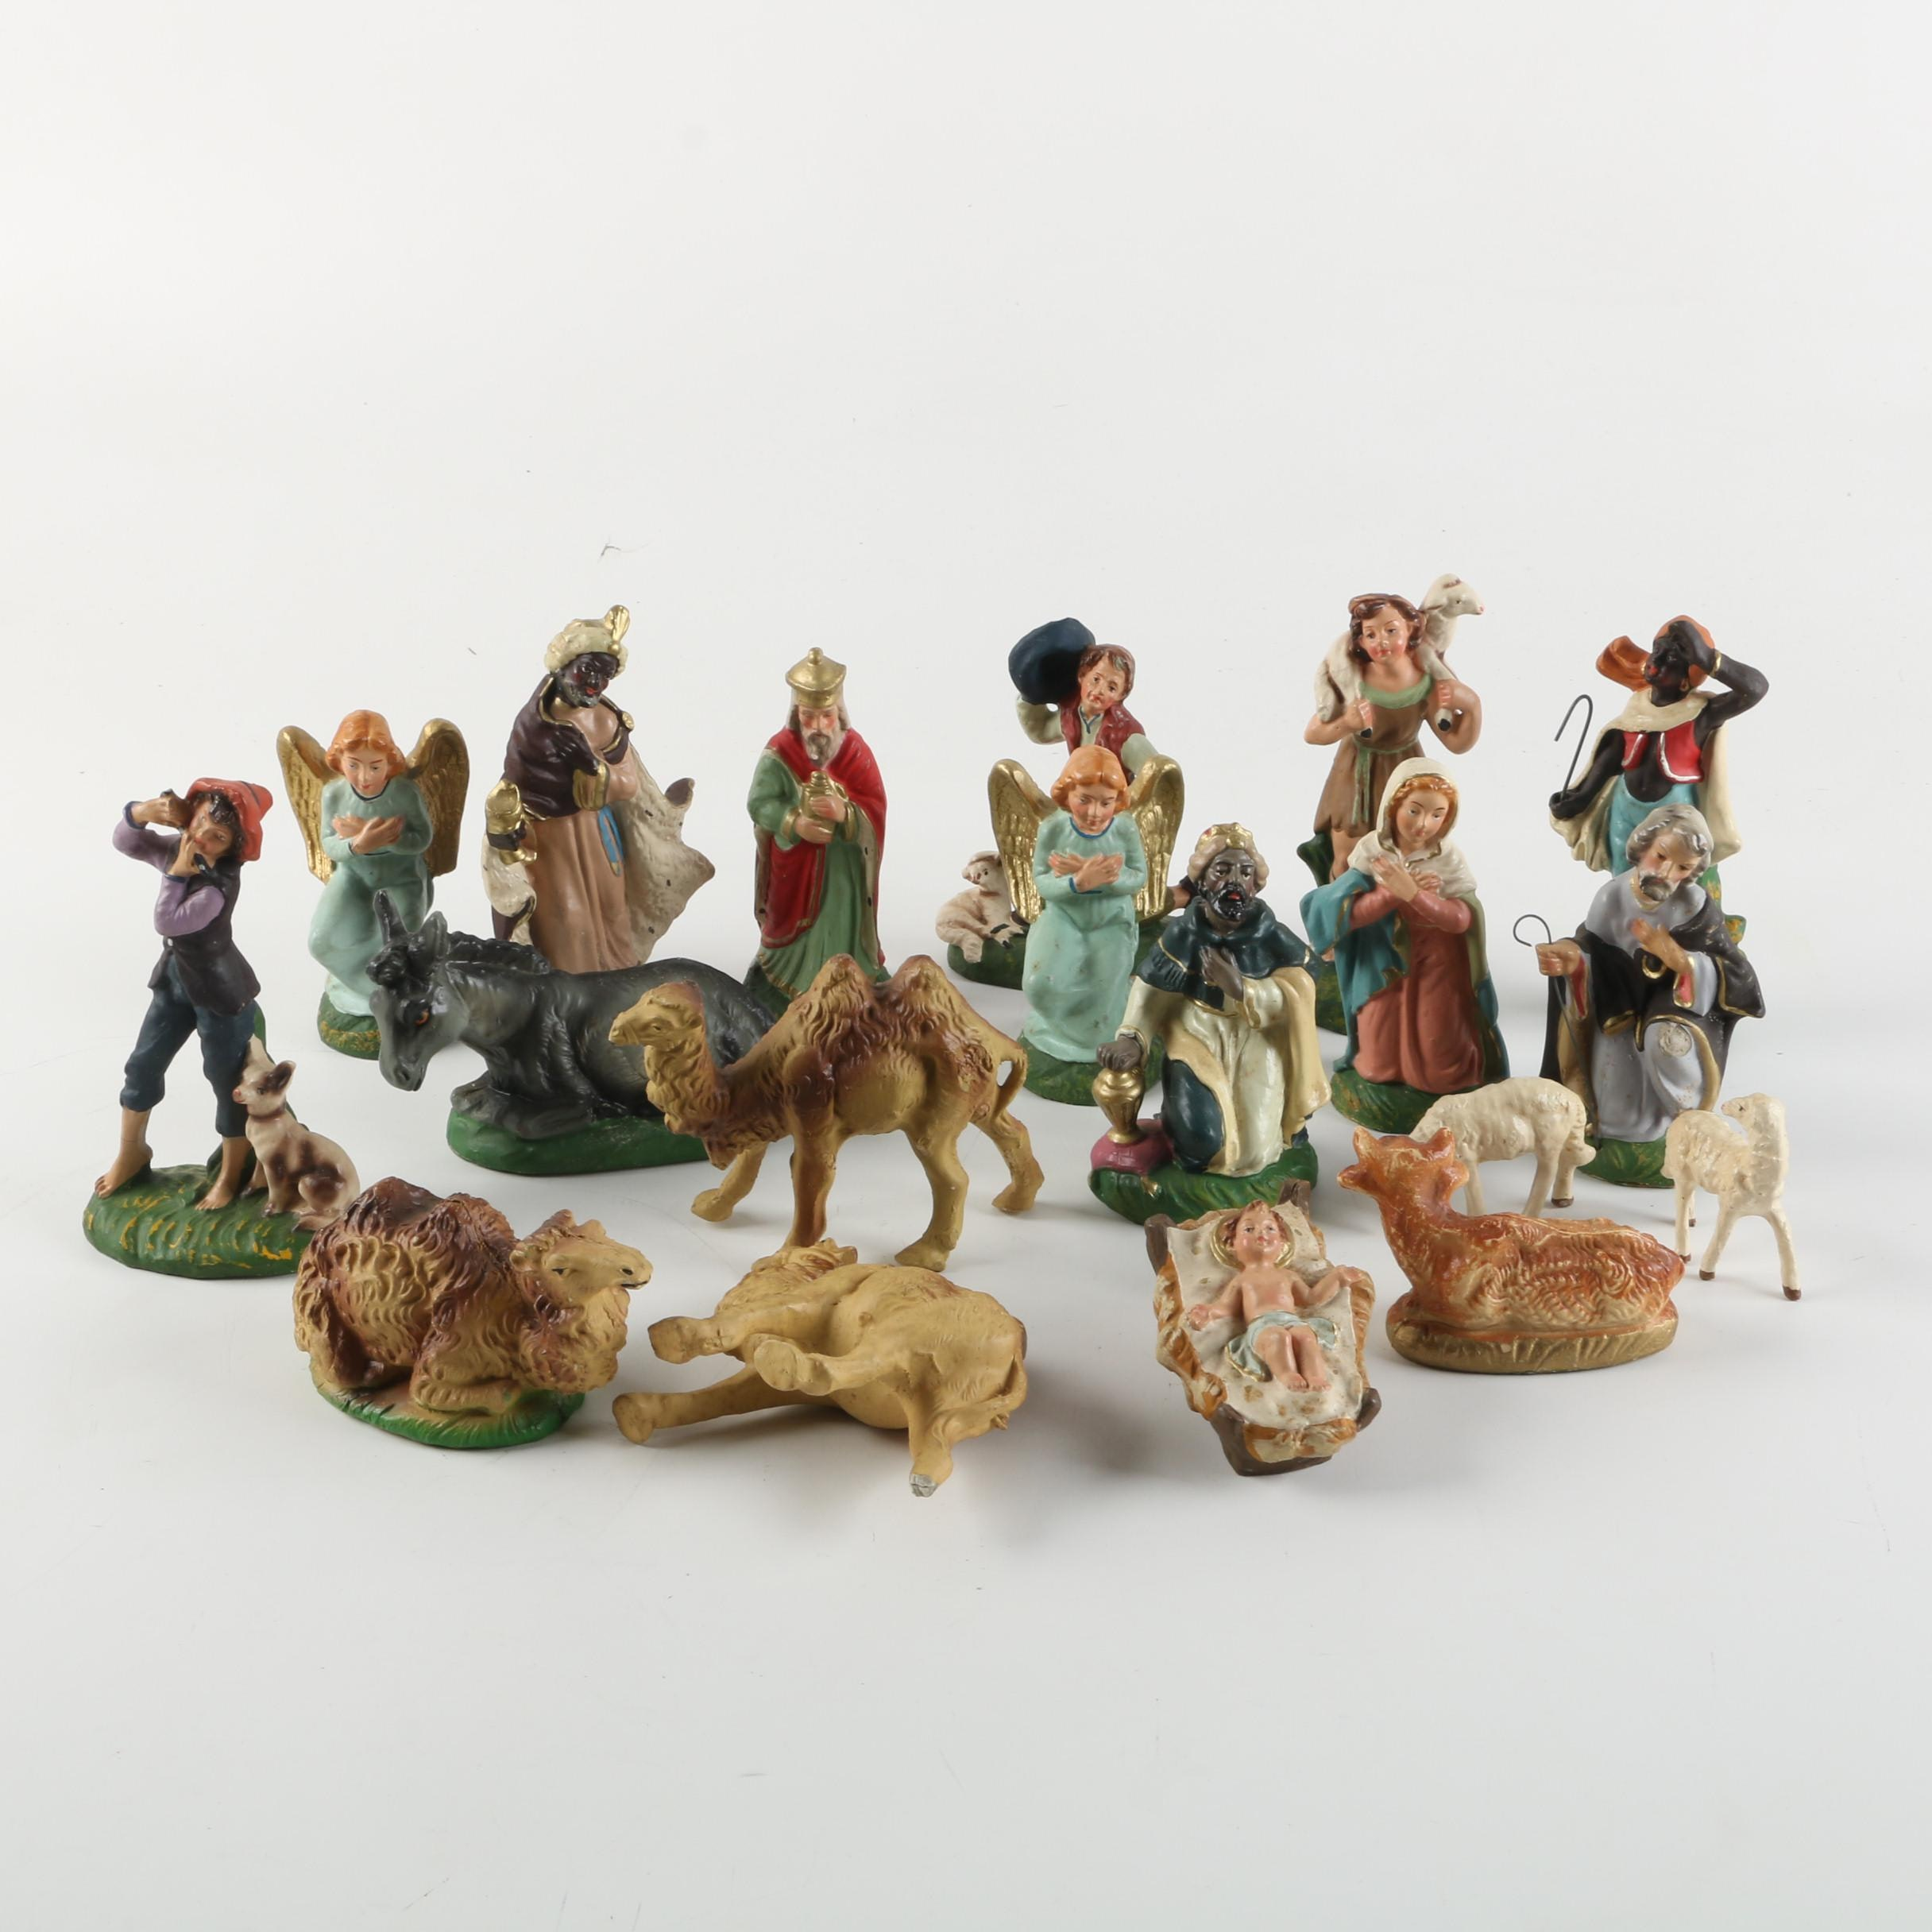 Vintage Italian Chalkware Nativity Figurines